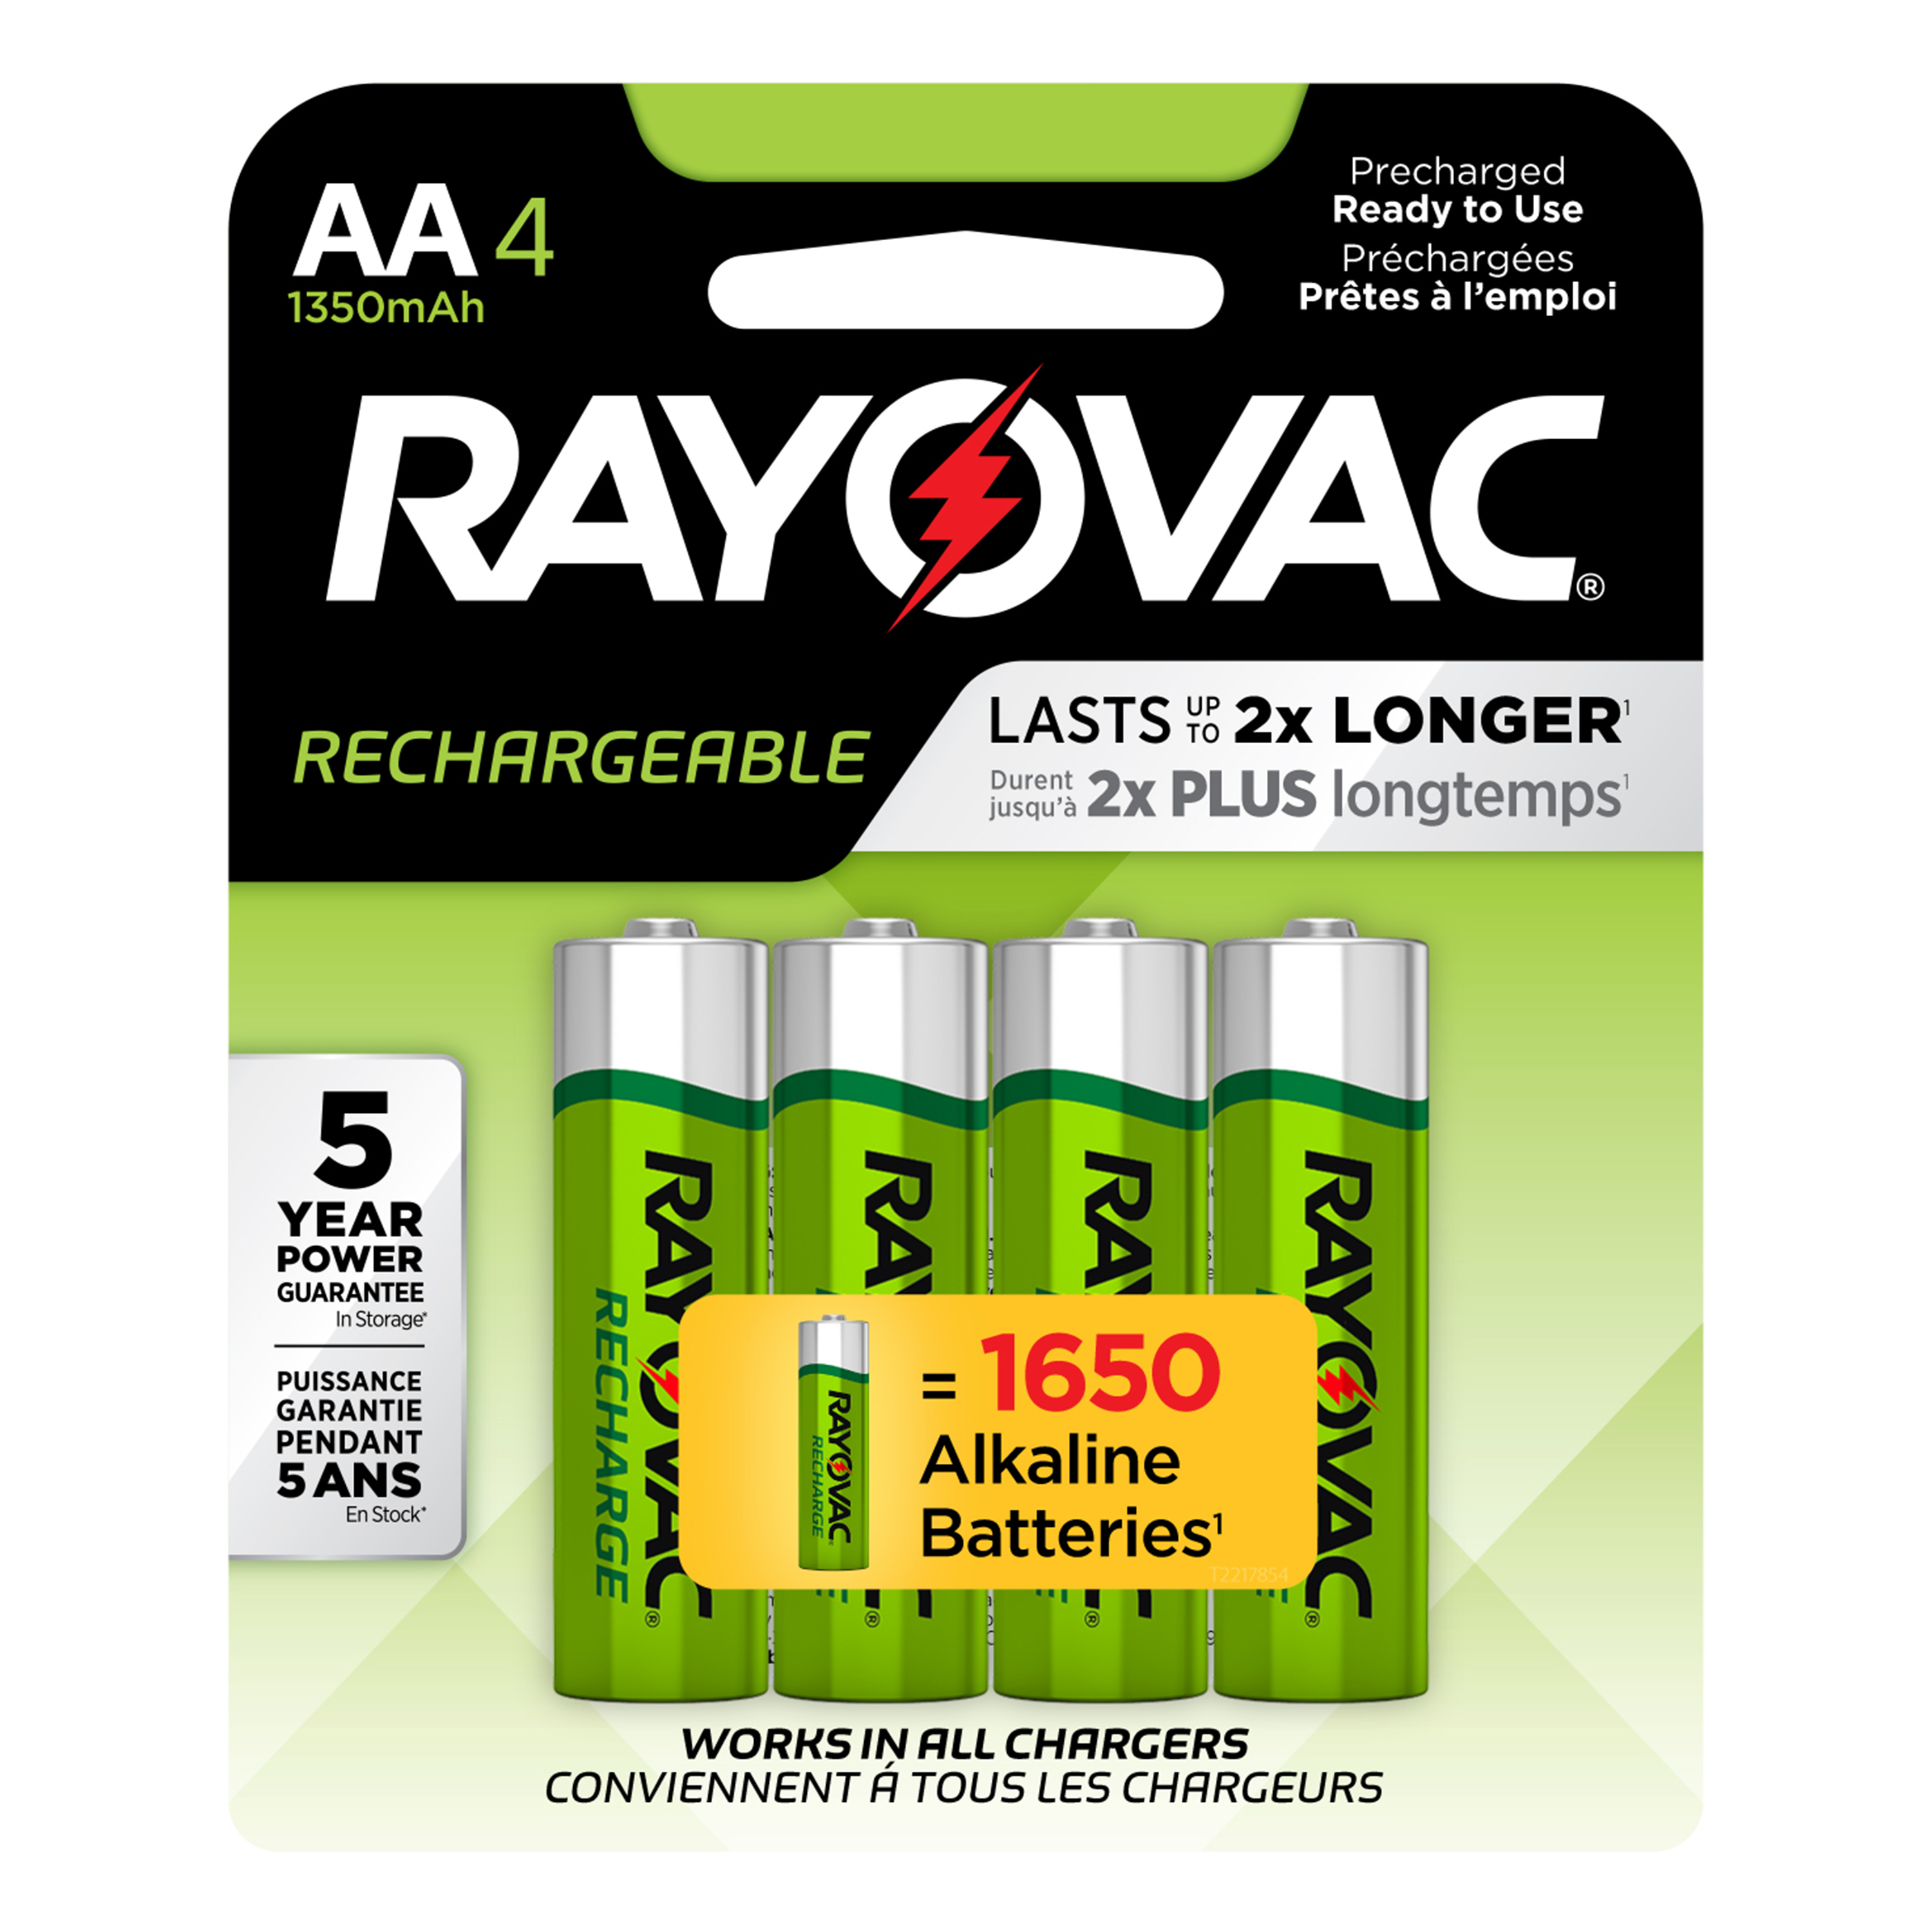 Rayovac Pre-charged Rechargeable NiMH, AA Batteries, 4 Count